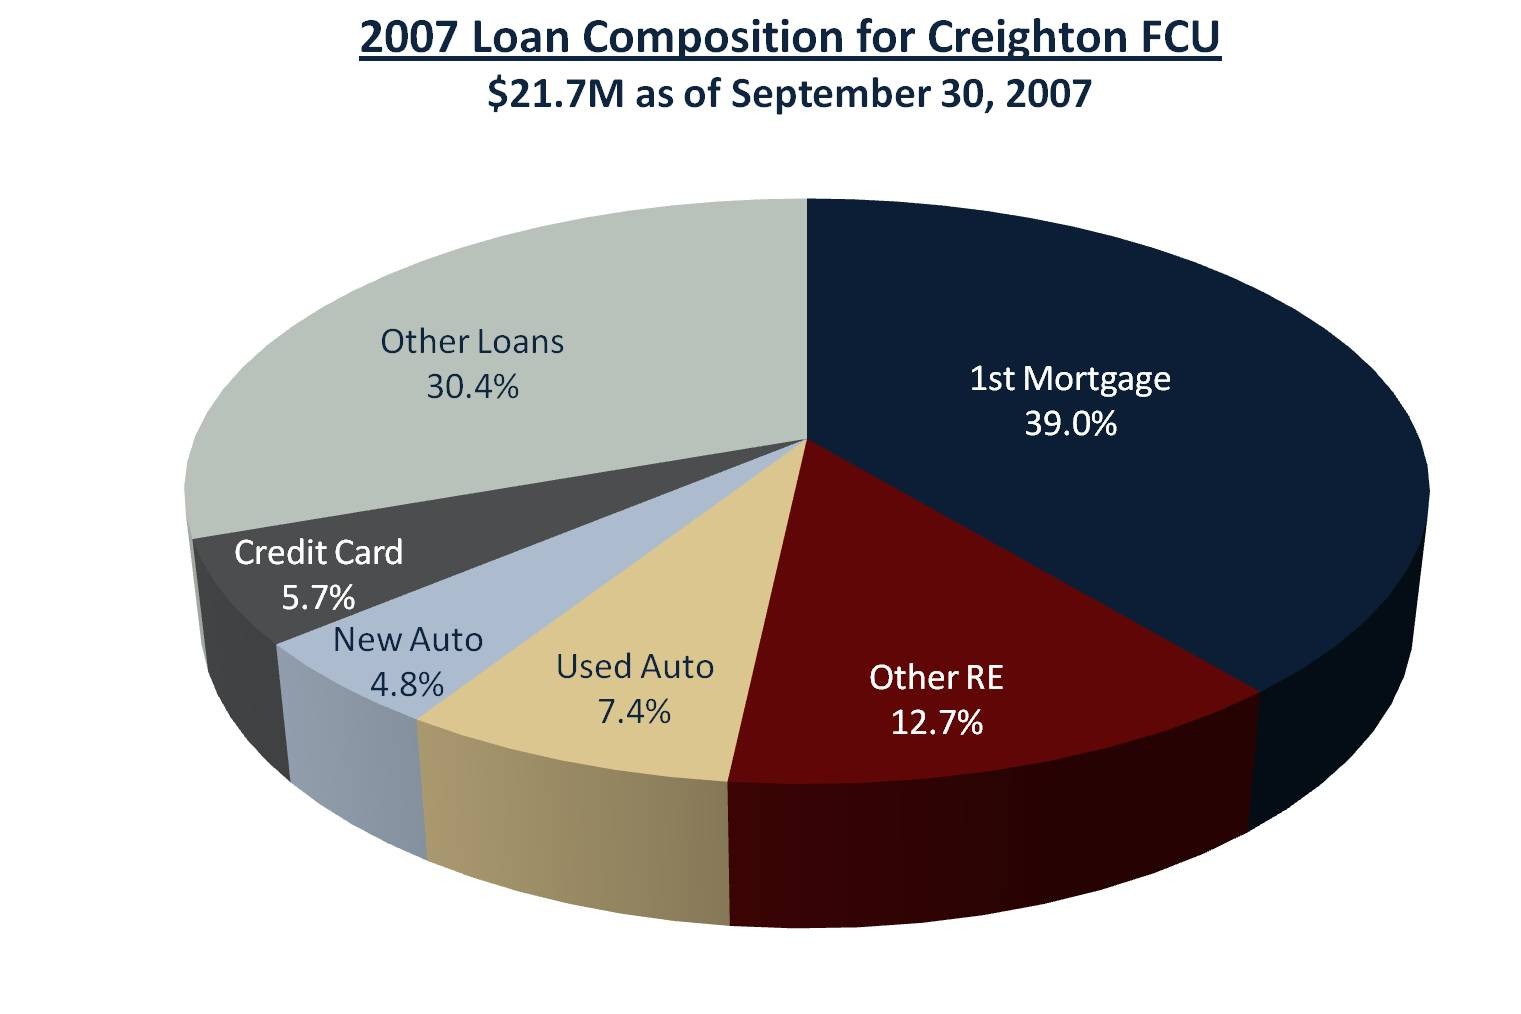 Creighton Loan Composition 2007